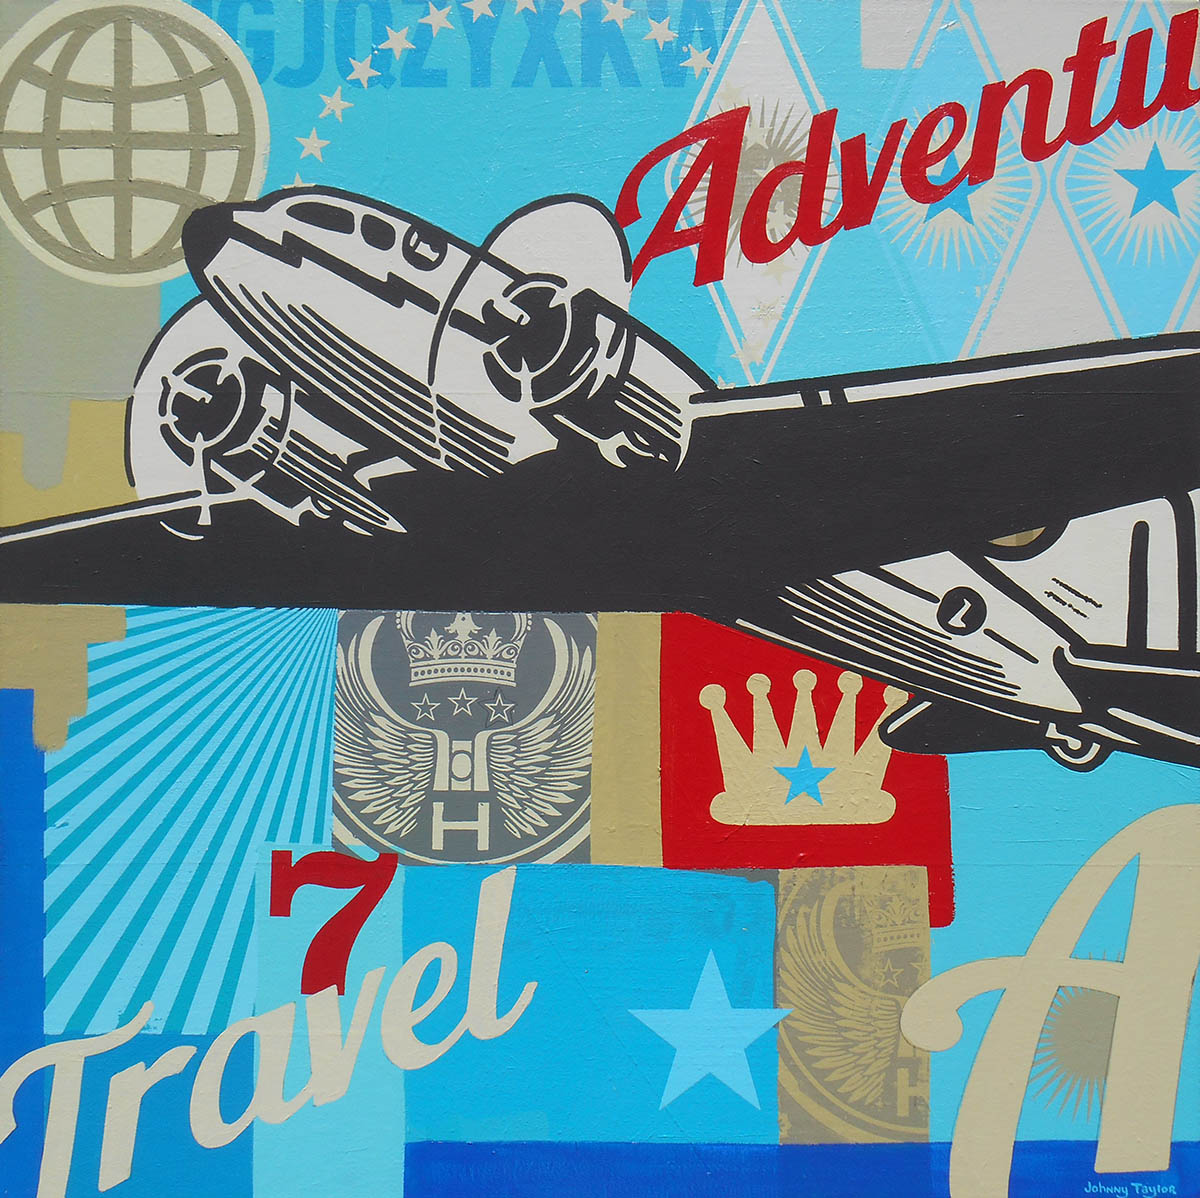 Retro aviation artwork